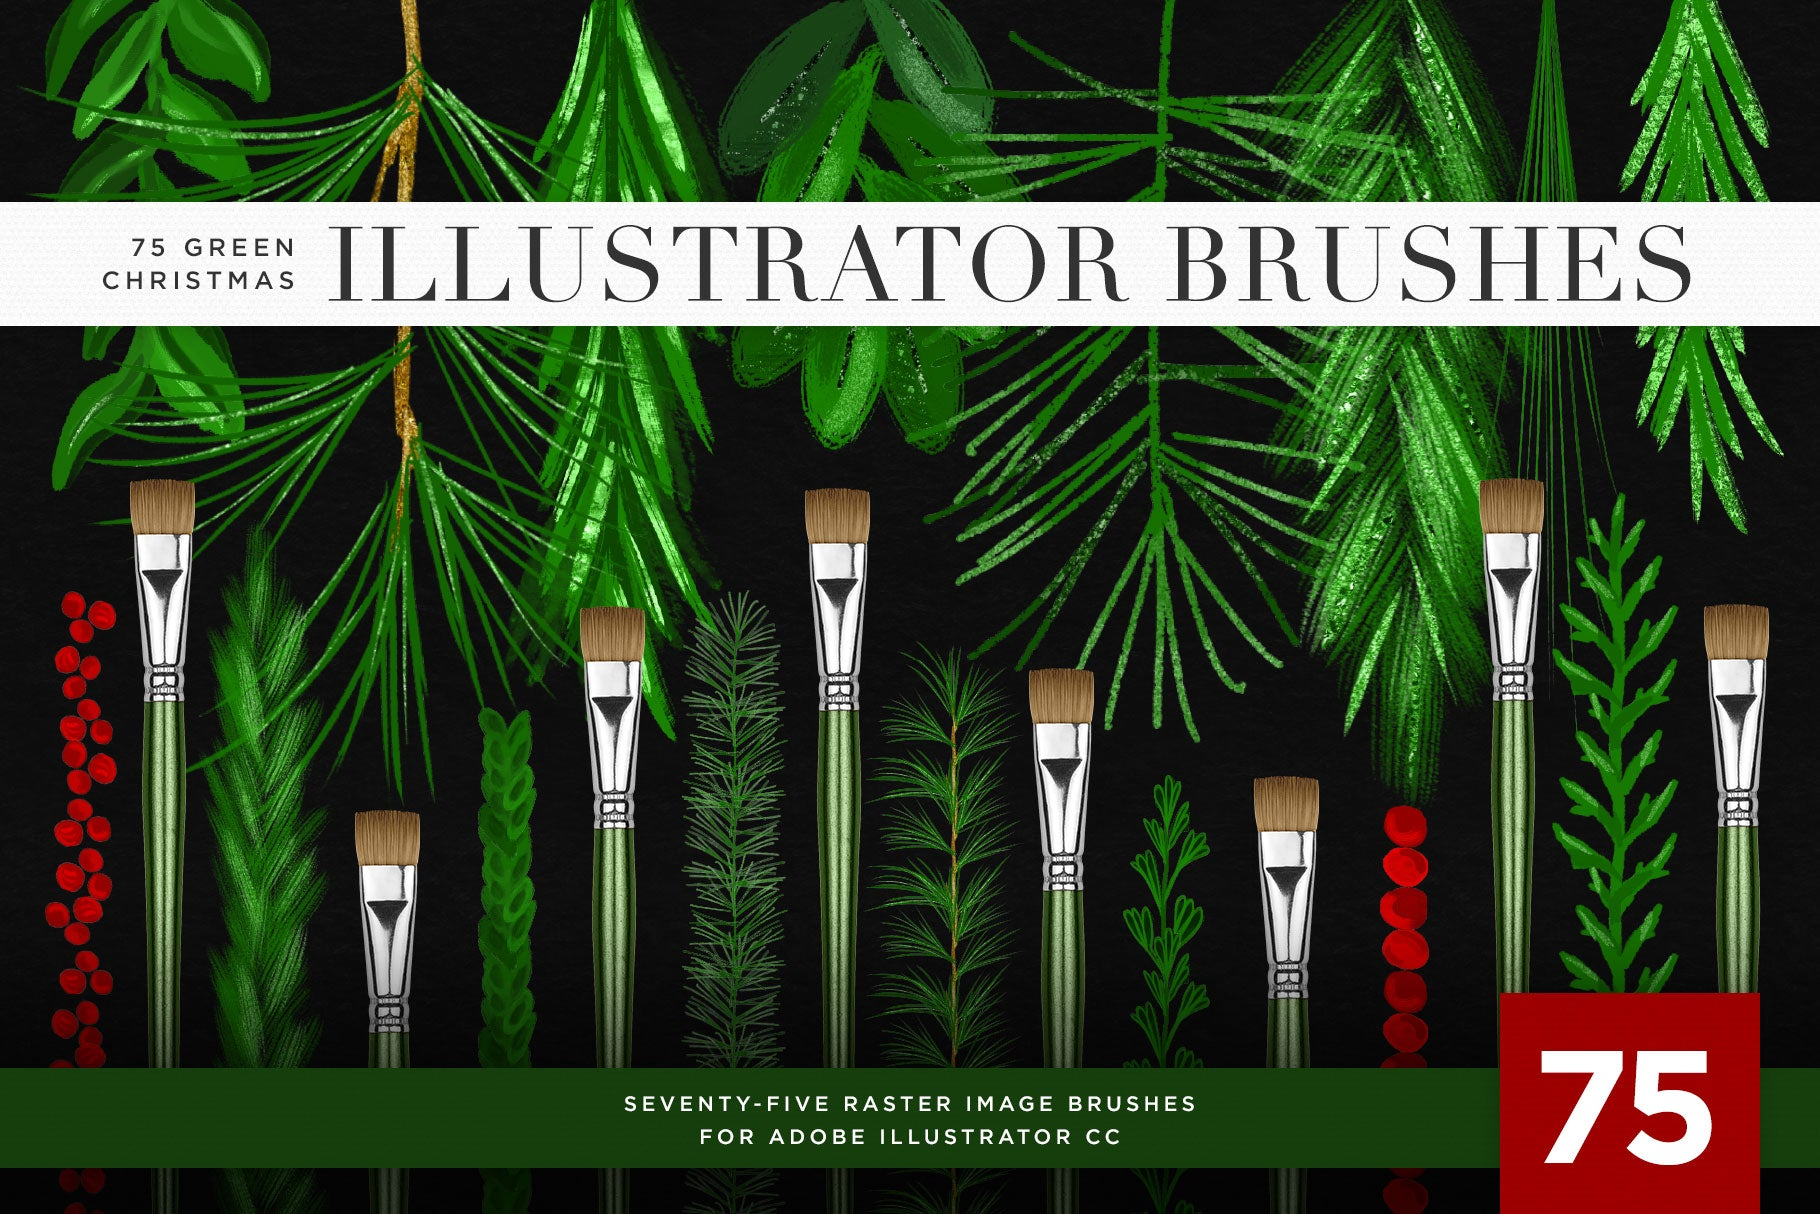 Christmas & Winter Greenery Illustrated Brushes for Adobe Illustrator dark background preview